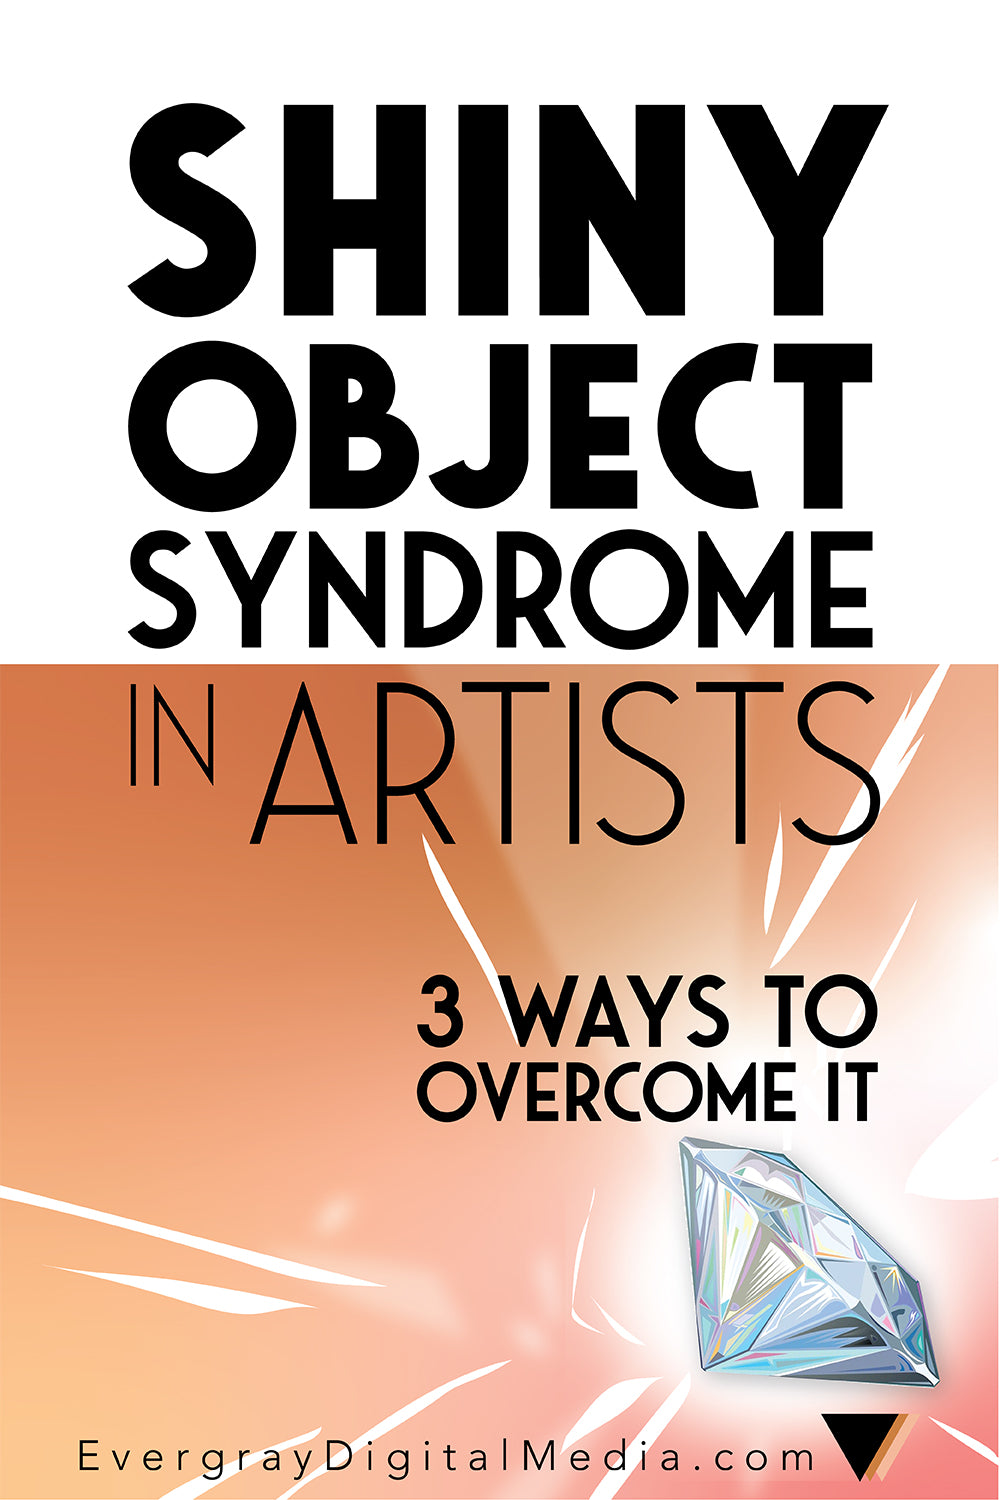 Shiny Object Syndrome in Artists is insanely common in creative entrepreneurs, likely because of how easy it is to envision the end result of a project. Learn how to overcome Shiny object Syndrome that causes scattered, unfinished projects in 3 steps.